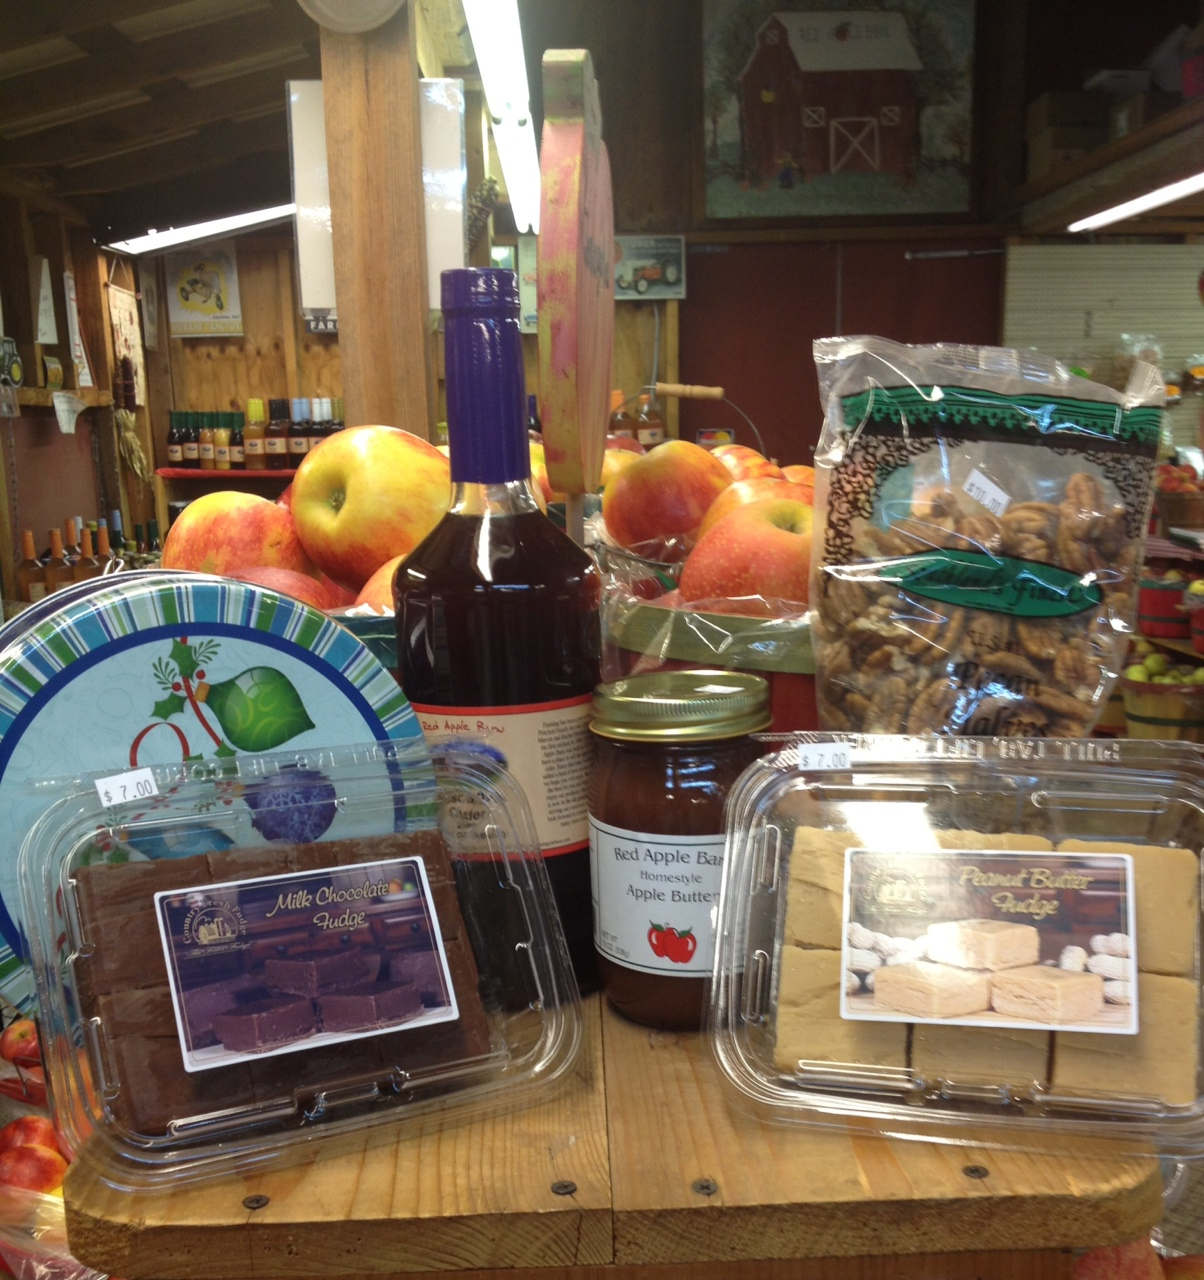 Farm store, apples and ciders, pies, caramel and candied apples, jams and jellies, bread, fritters, 		 cookbooks, candles